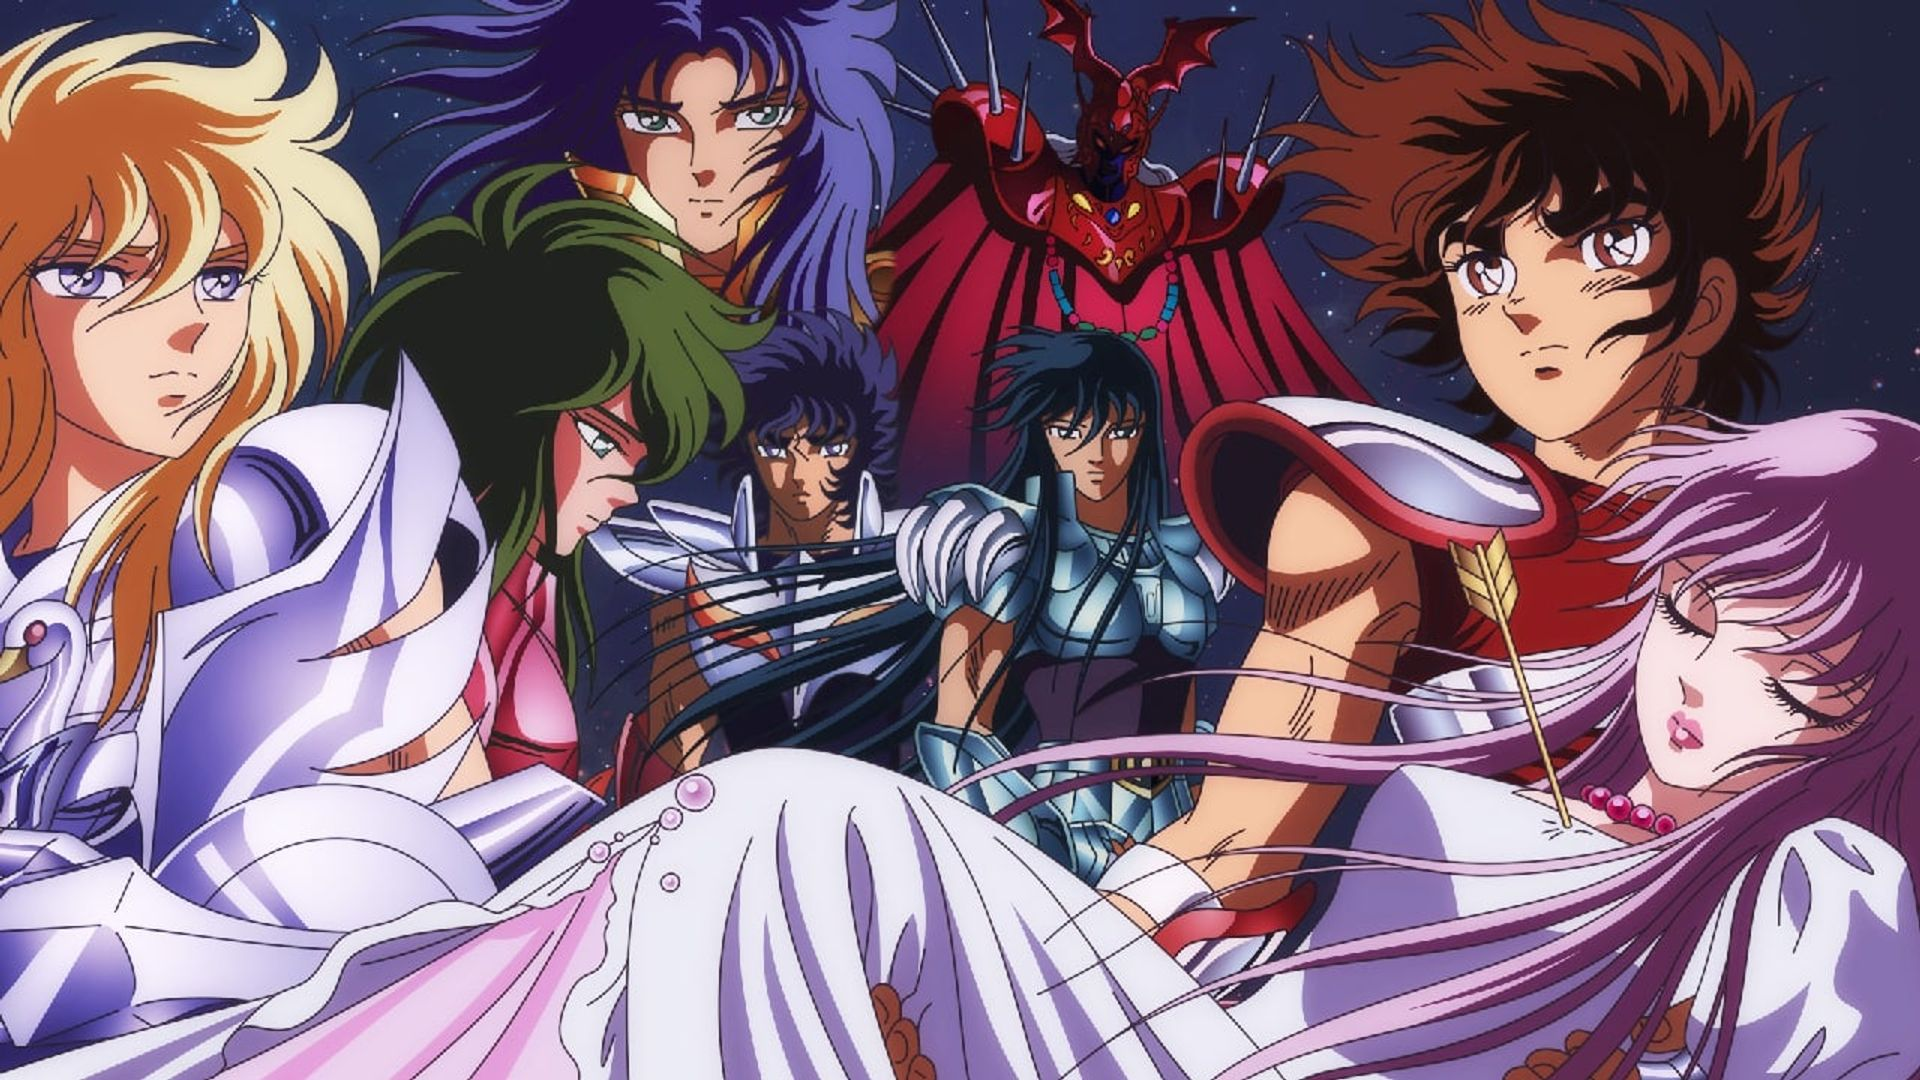 Saint Seiya - Watch Episodes on Netflix, Prime Video, ConTV, and